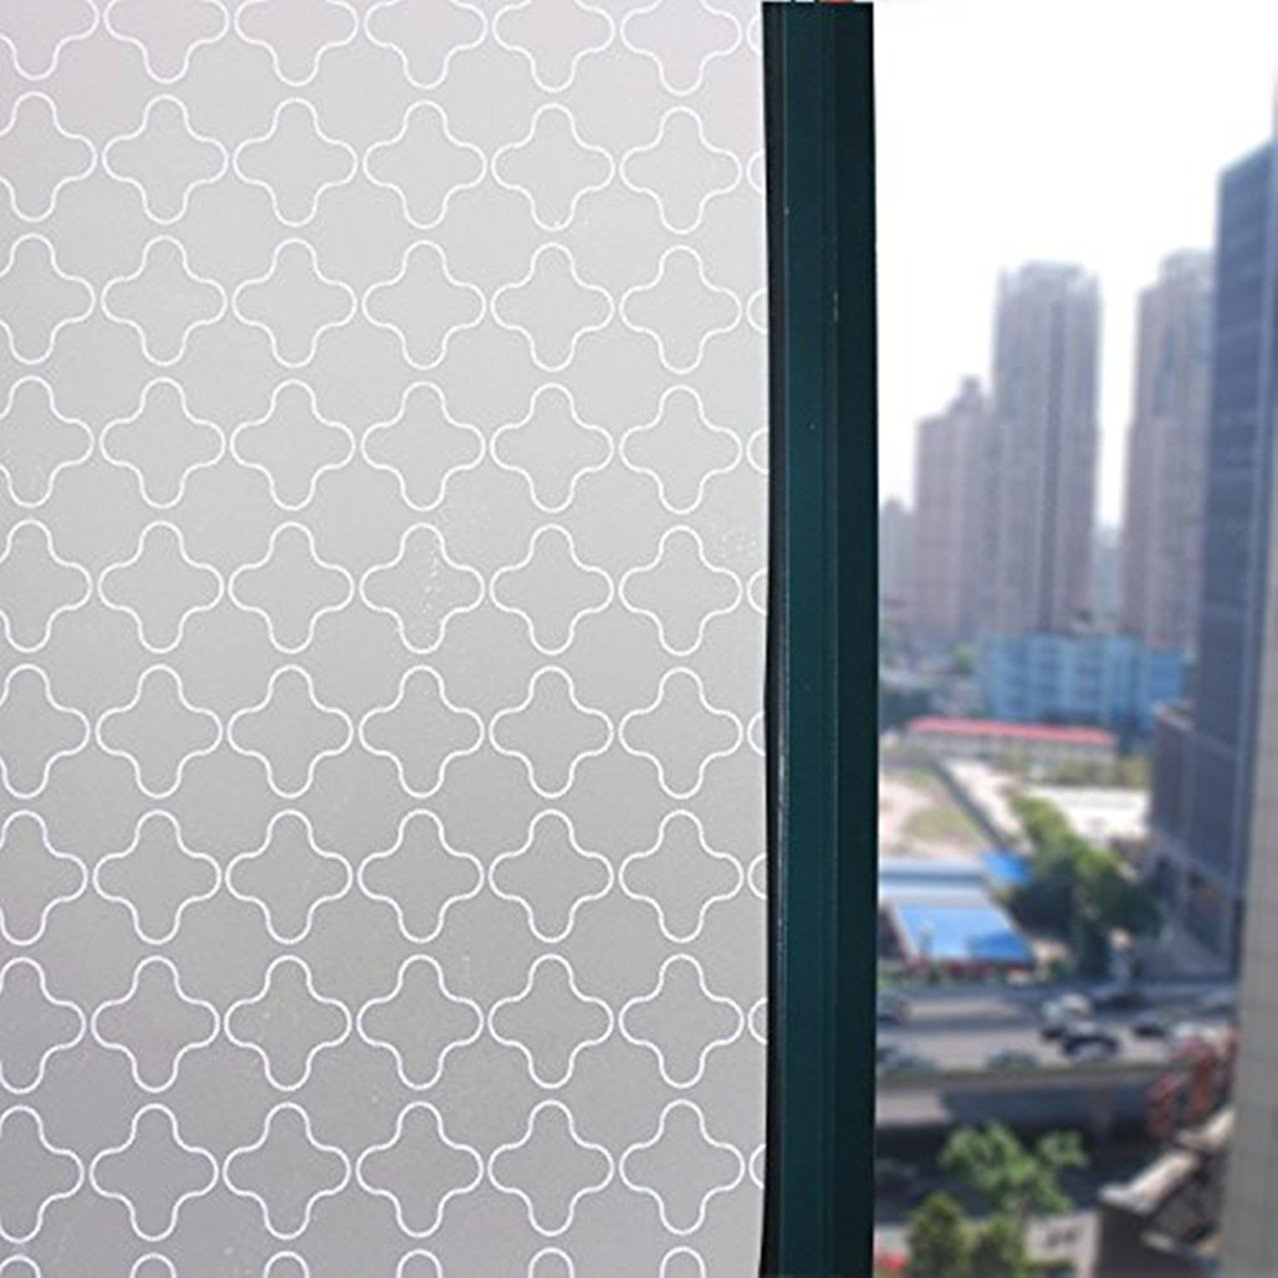 Decorative Privacy Windows Film Sticker Clover Pattern Window Cling Paper For Home and Office17.7x78.7-Inch by Coavas